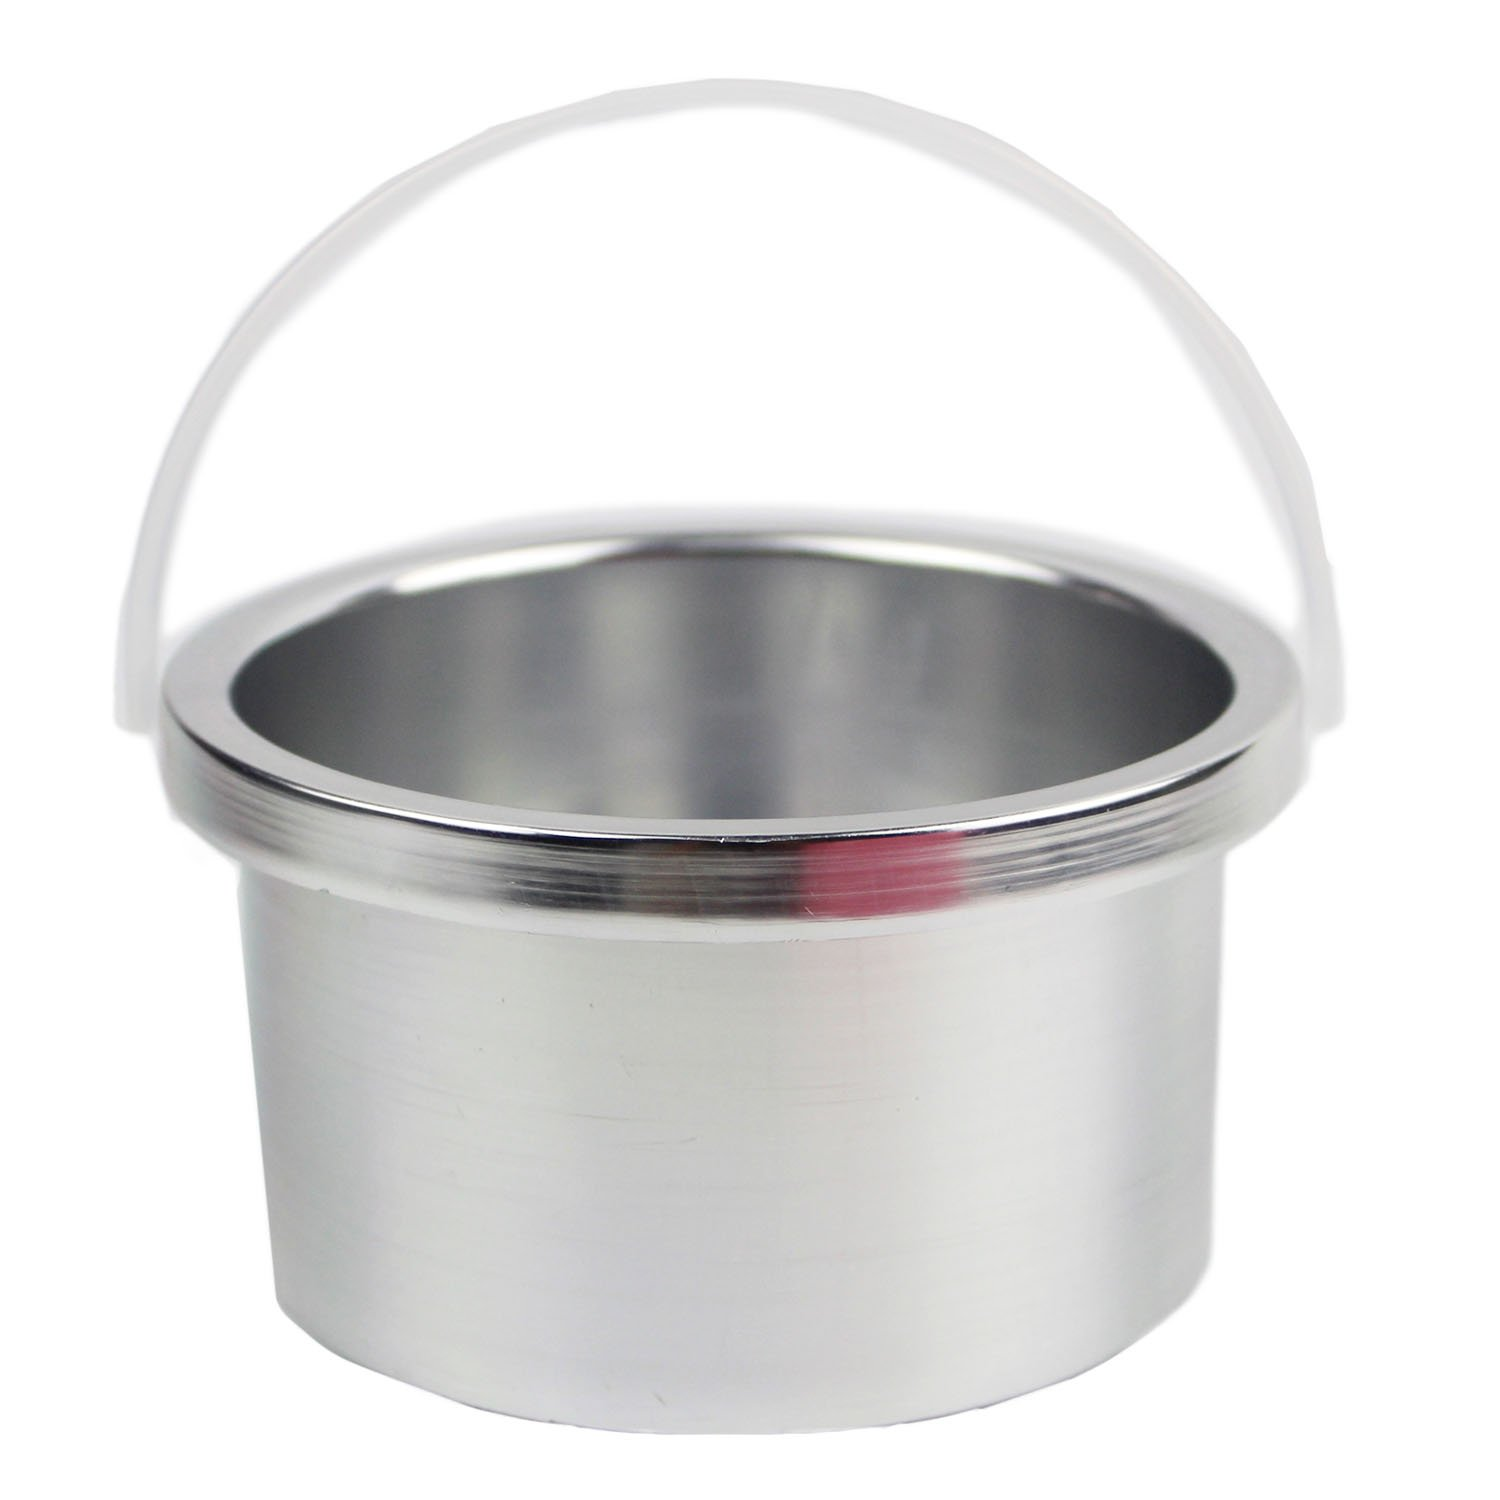 FIGHTART Wax Warmer Pot 14 Oz for Hair Removal Machine Waxing Warmer Replacement Accessory